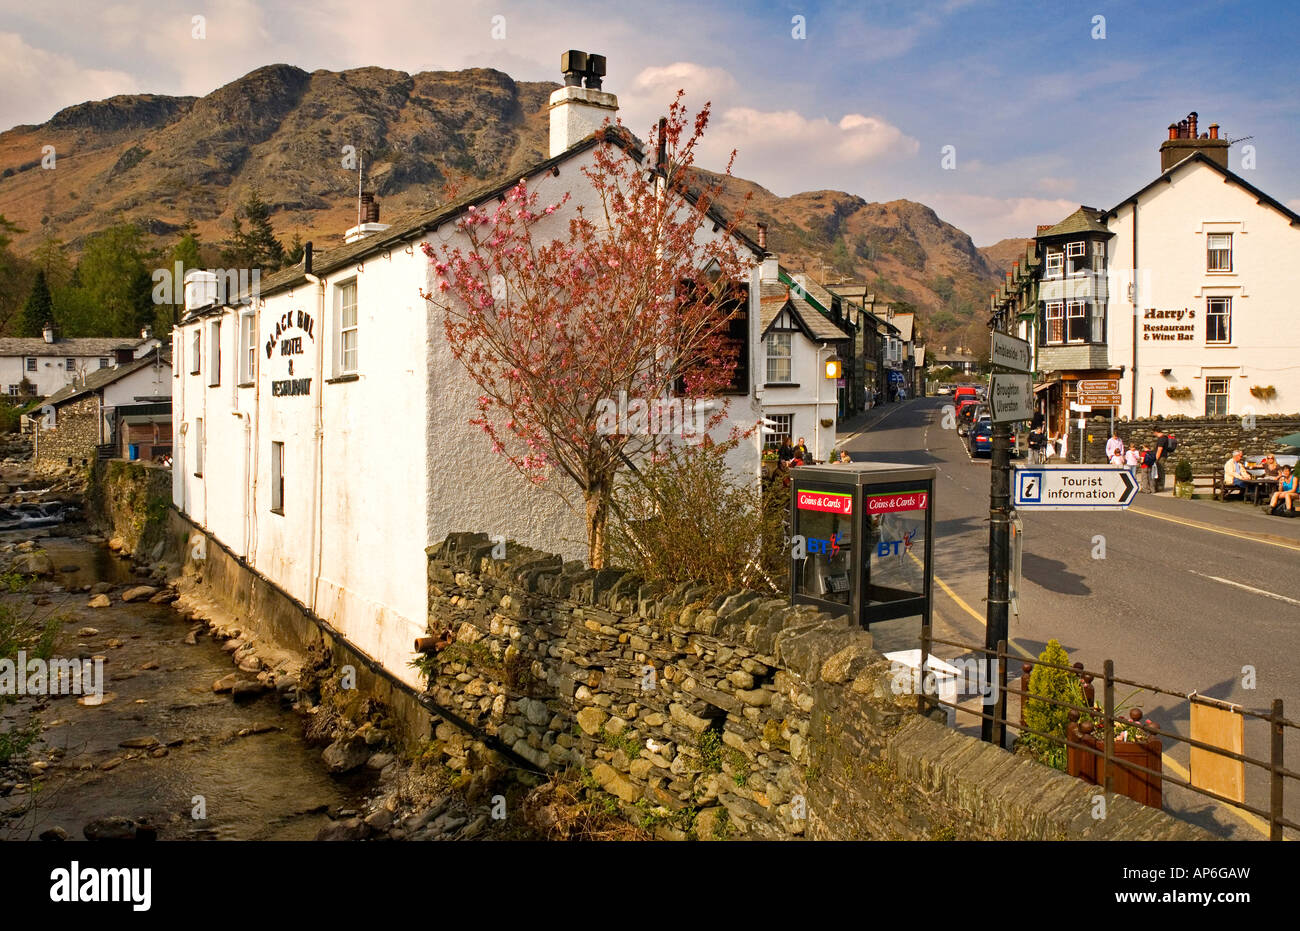 Coniston High Street, Coniston & Yewdale Fells Behind, Lake District, Cumbria, England, UK Stock Photo